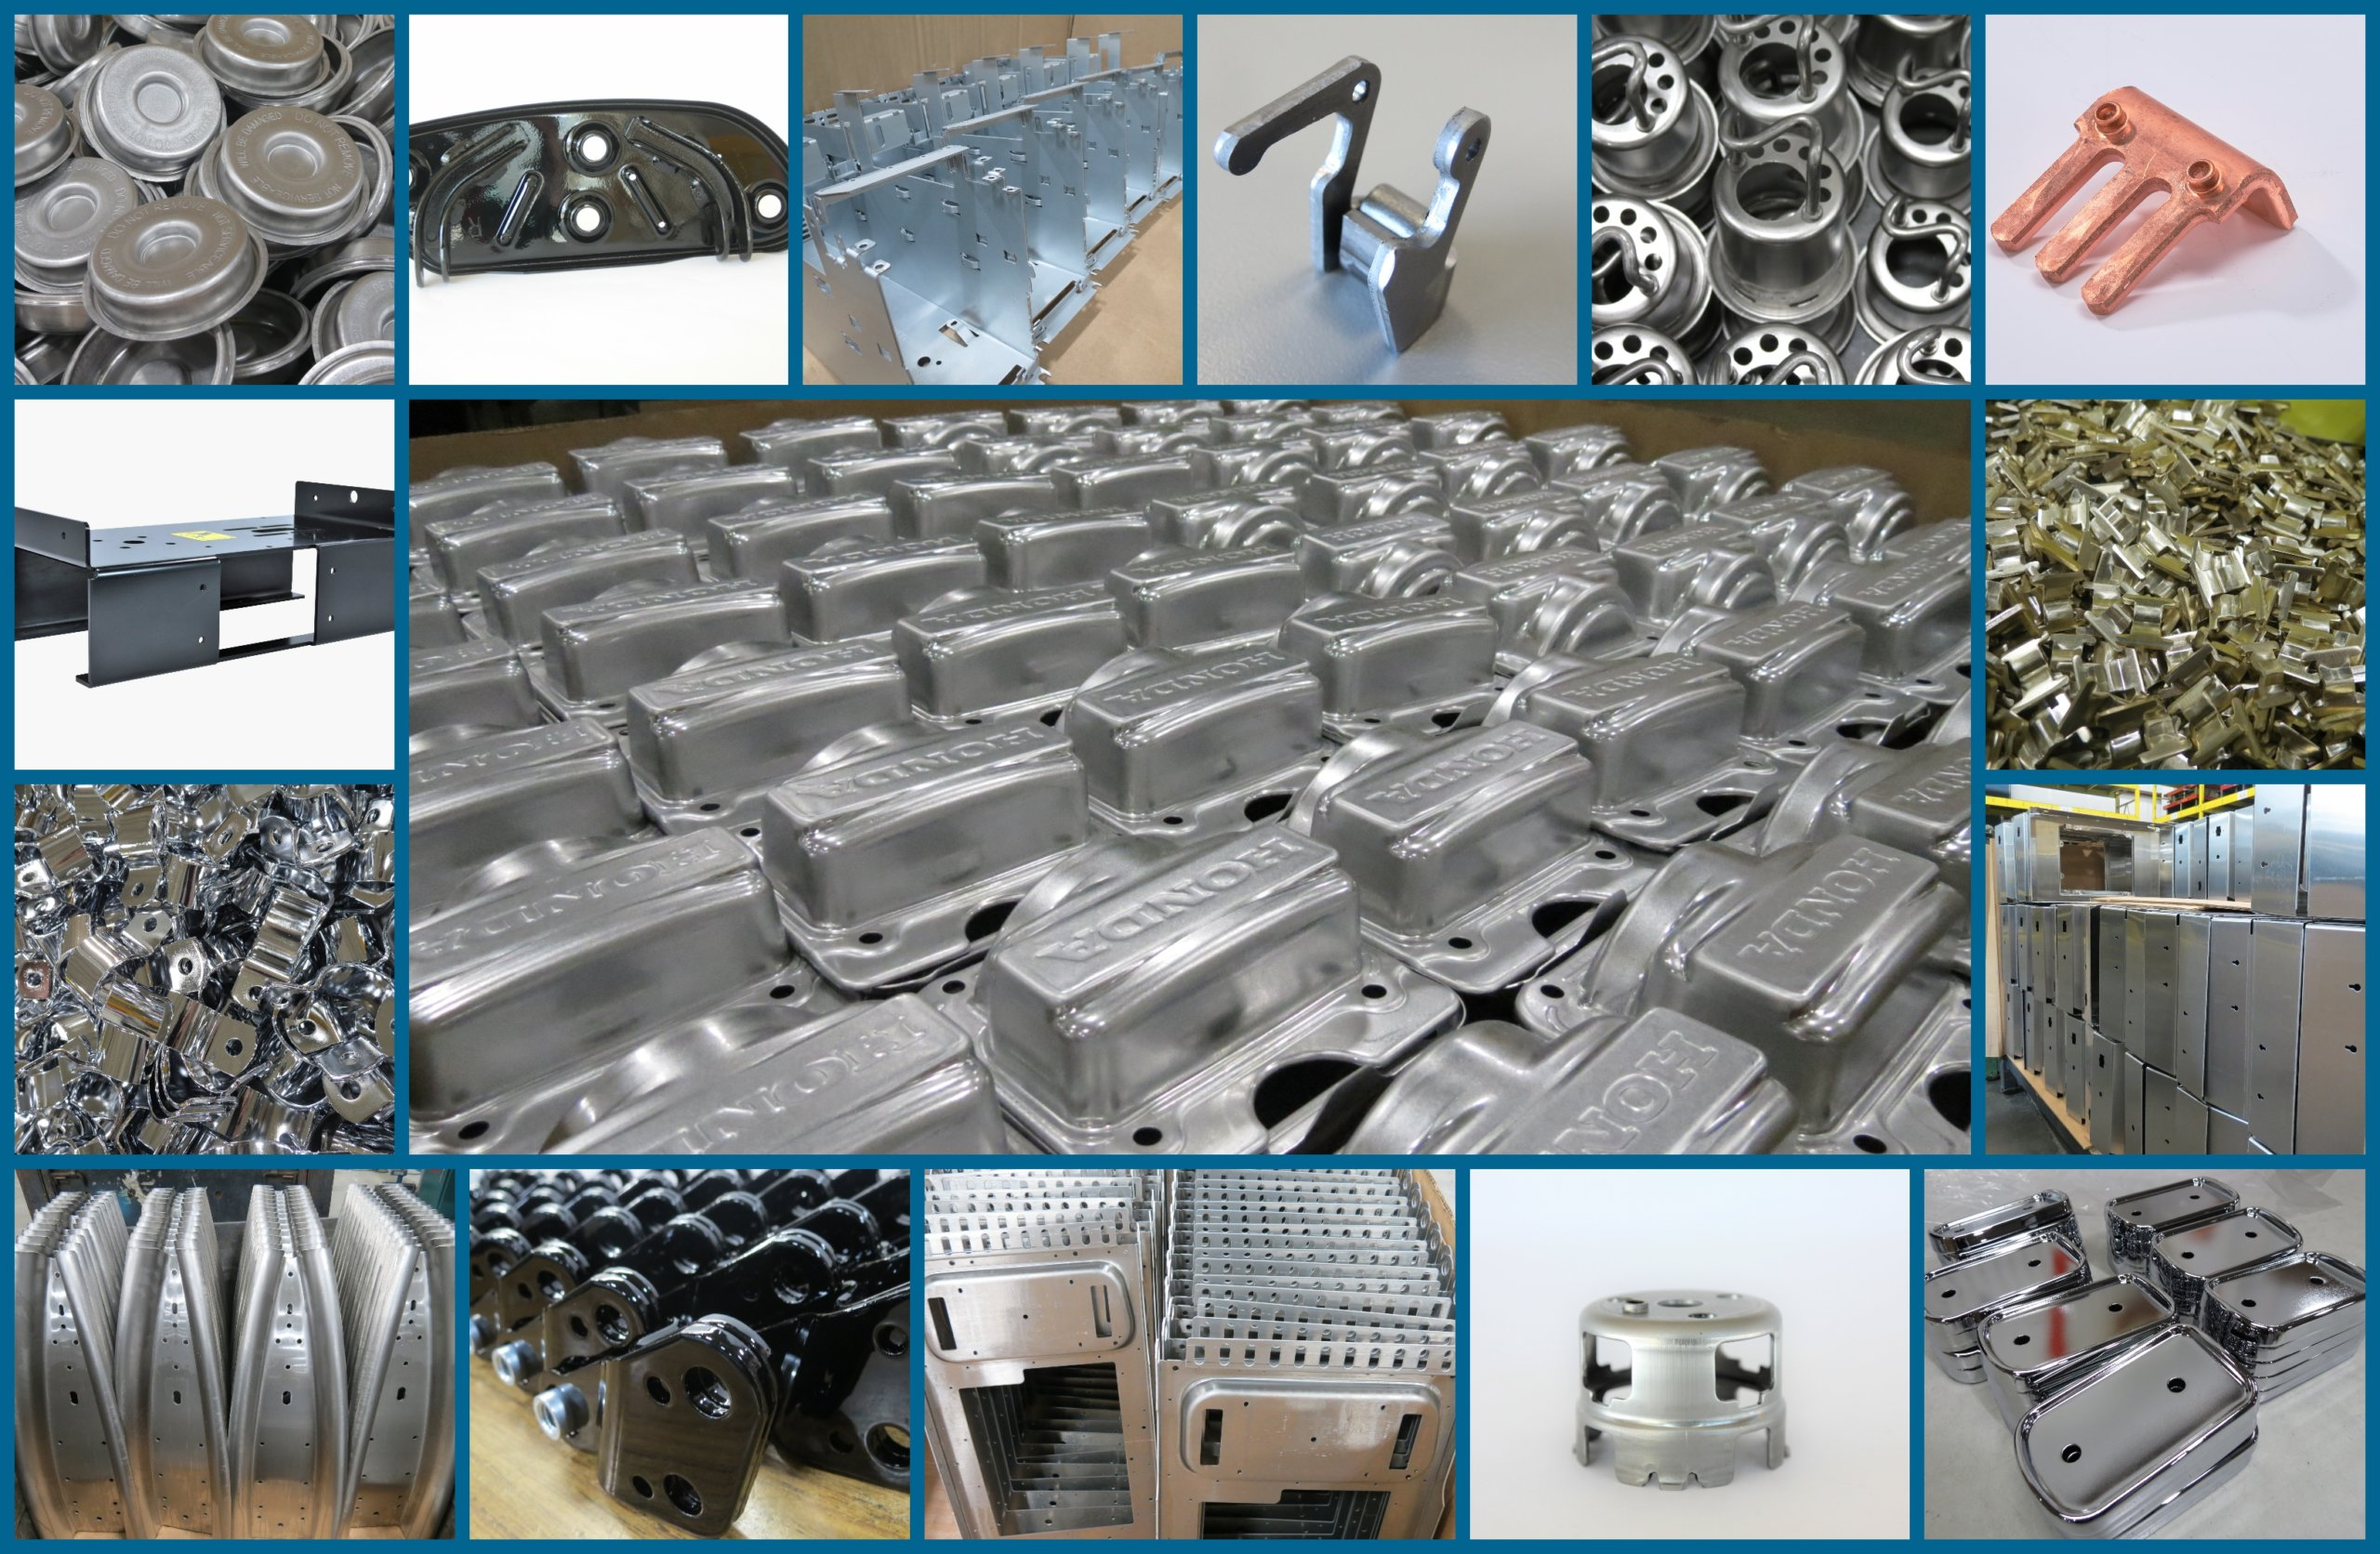 stamped metal parts and fabricated metal parts